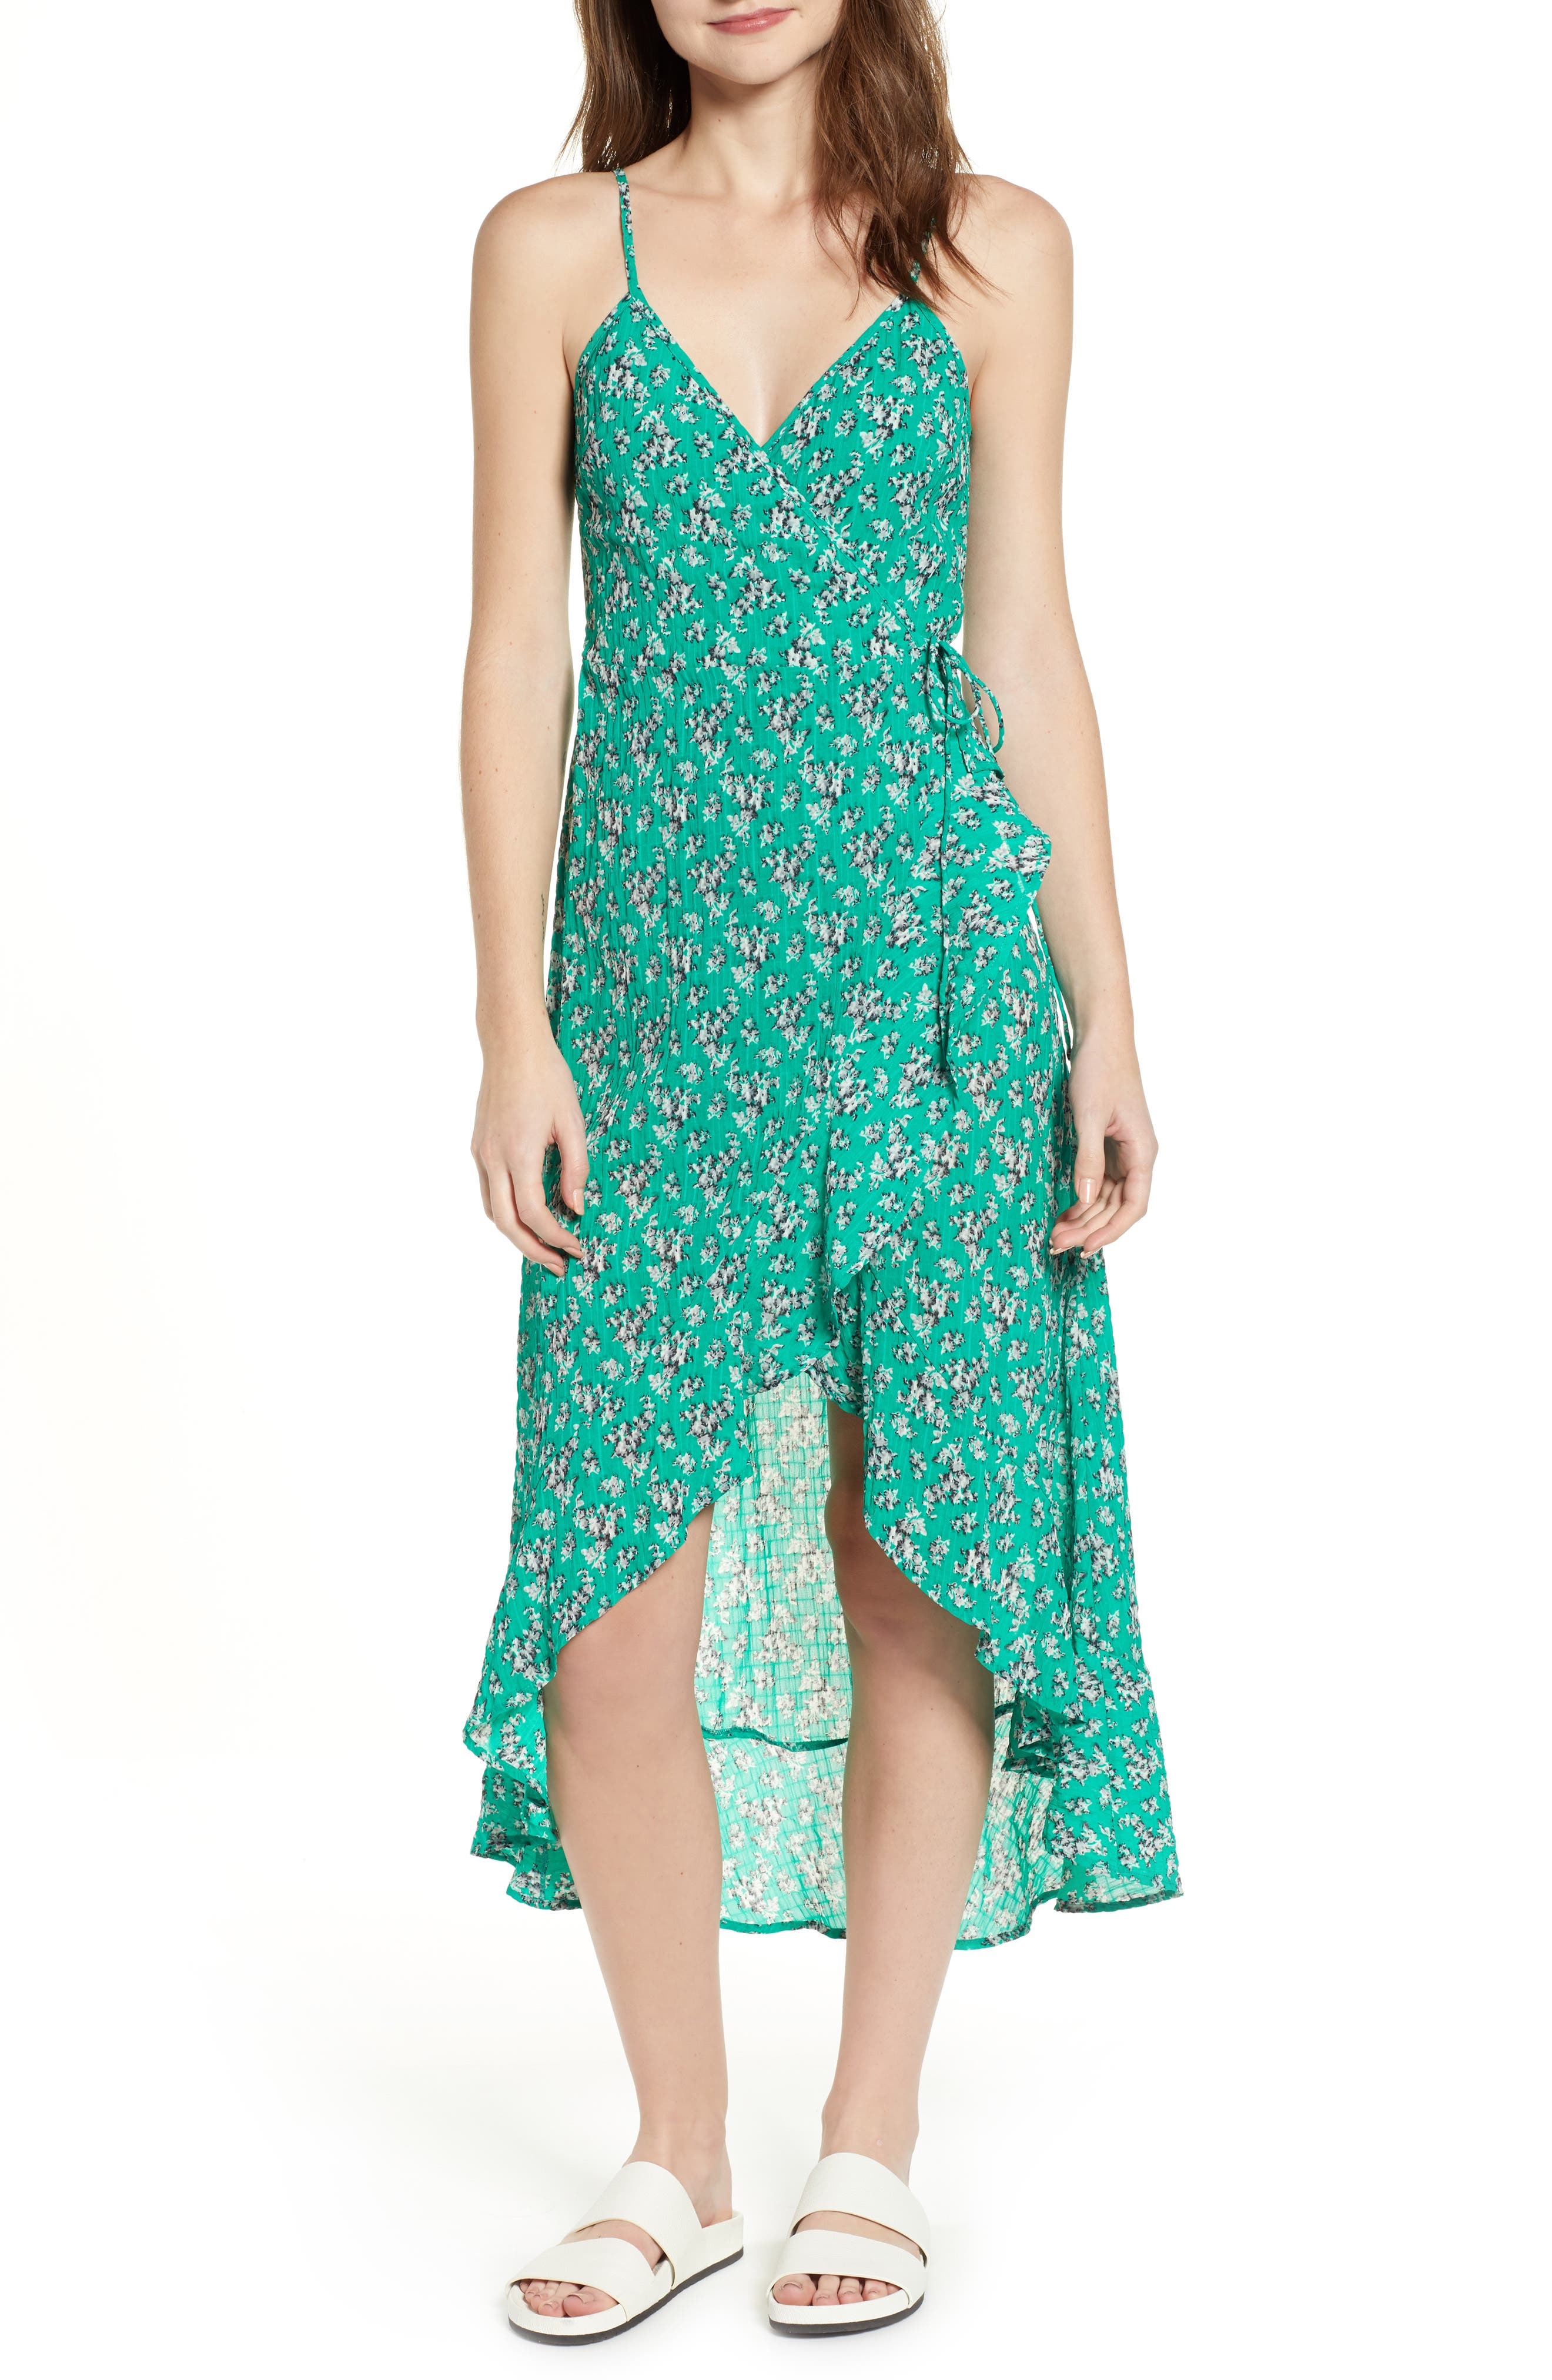 The Fifth Label Adventurer Floral Print High/low Dress, Green